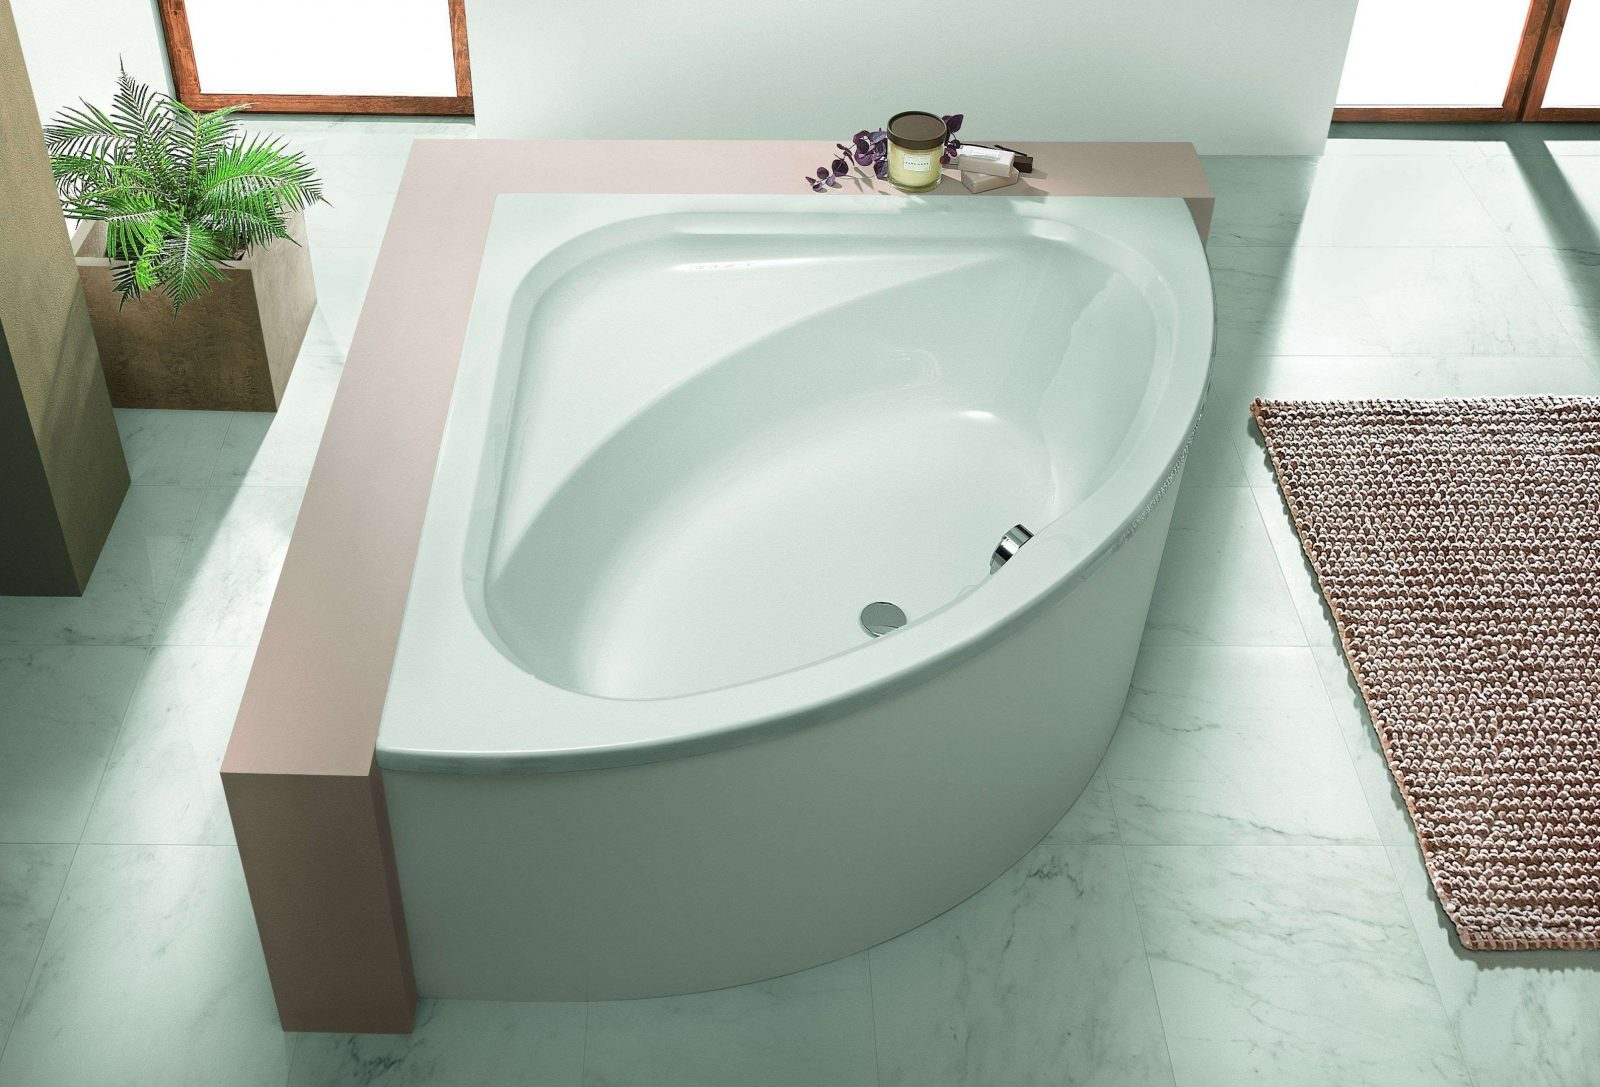 Partner Bettwäsche His Side Her Side Villeroy Und Boch Loop And Friends Badewanne Haus Design